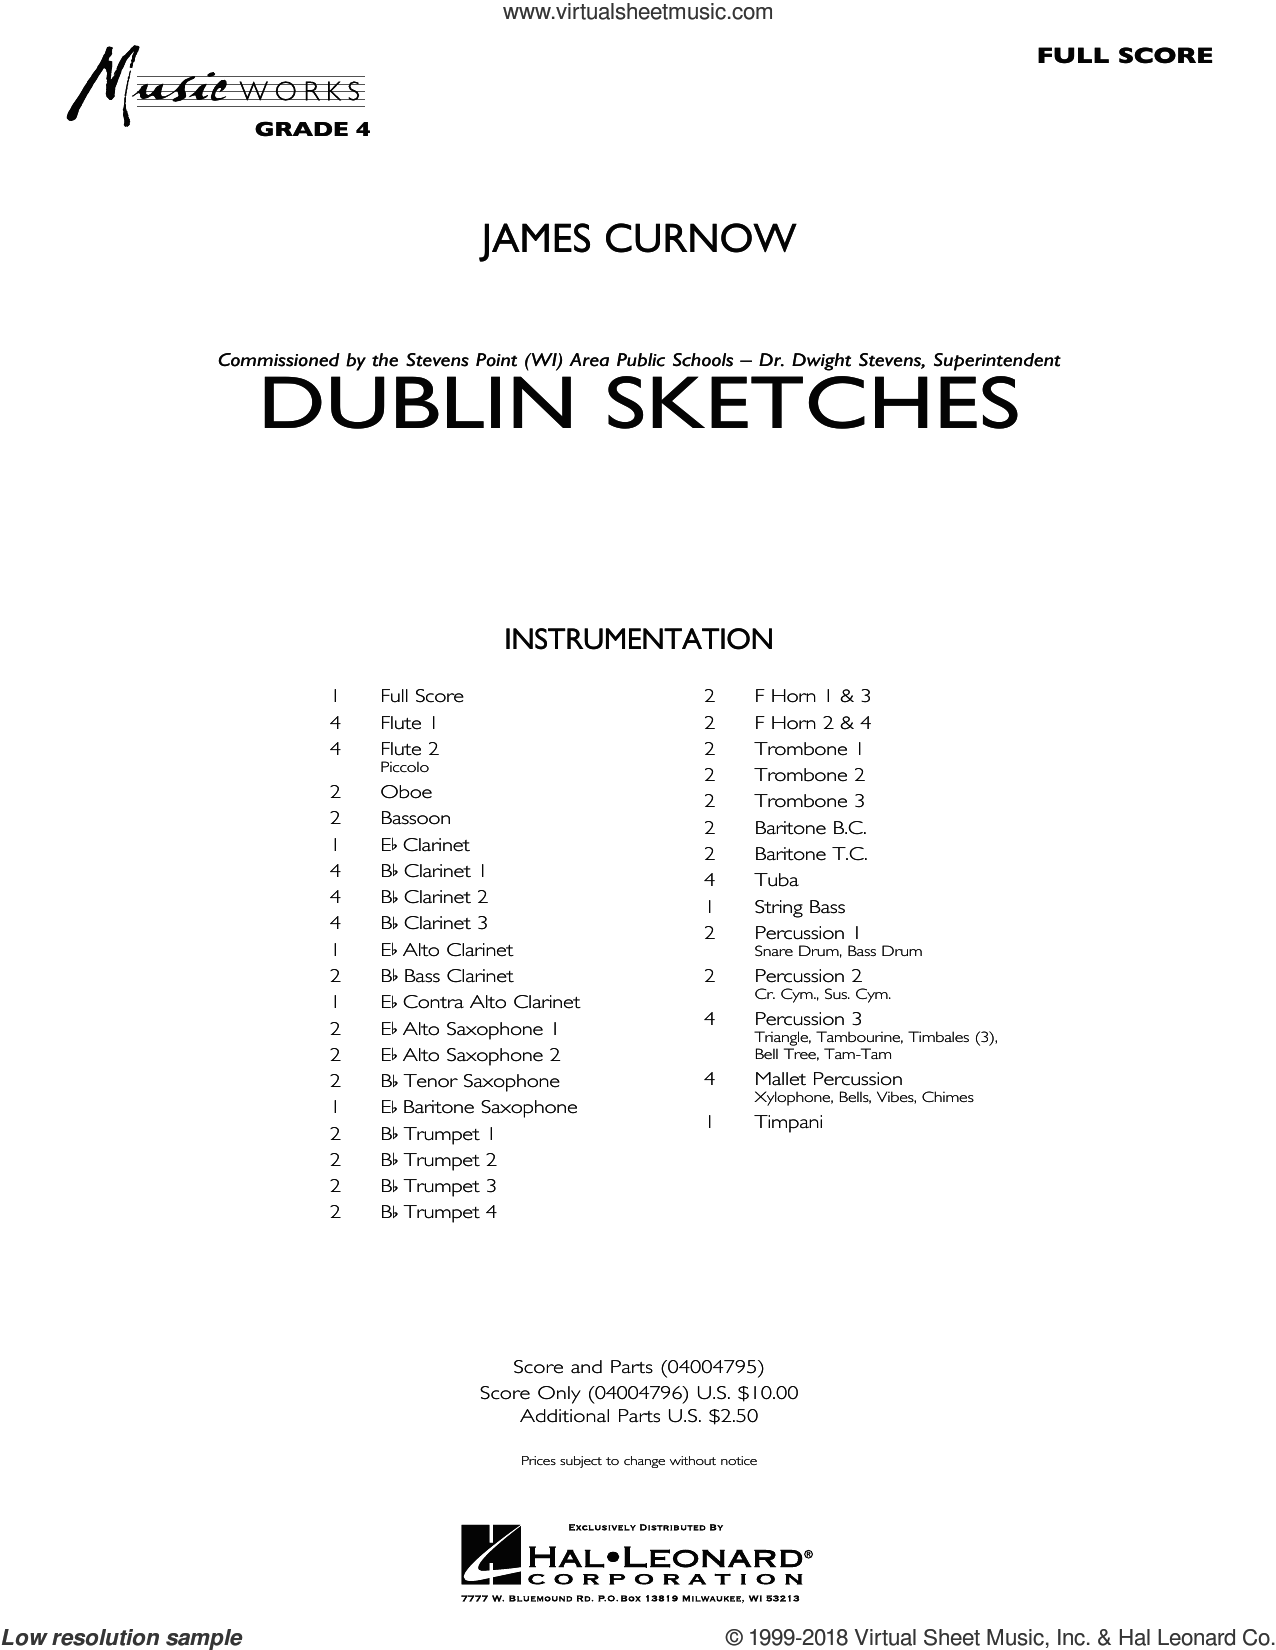 Dublin Sketches (COMPLETE) sheet music for concert band by James Curnow, intermediate